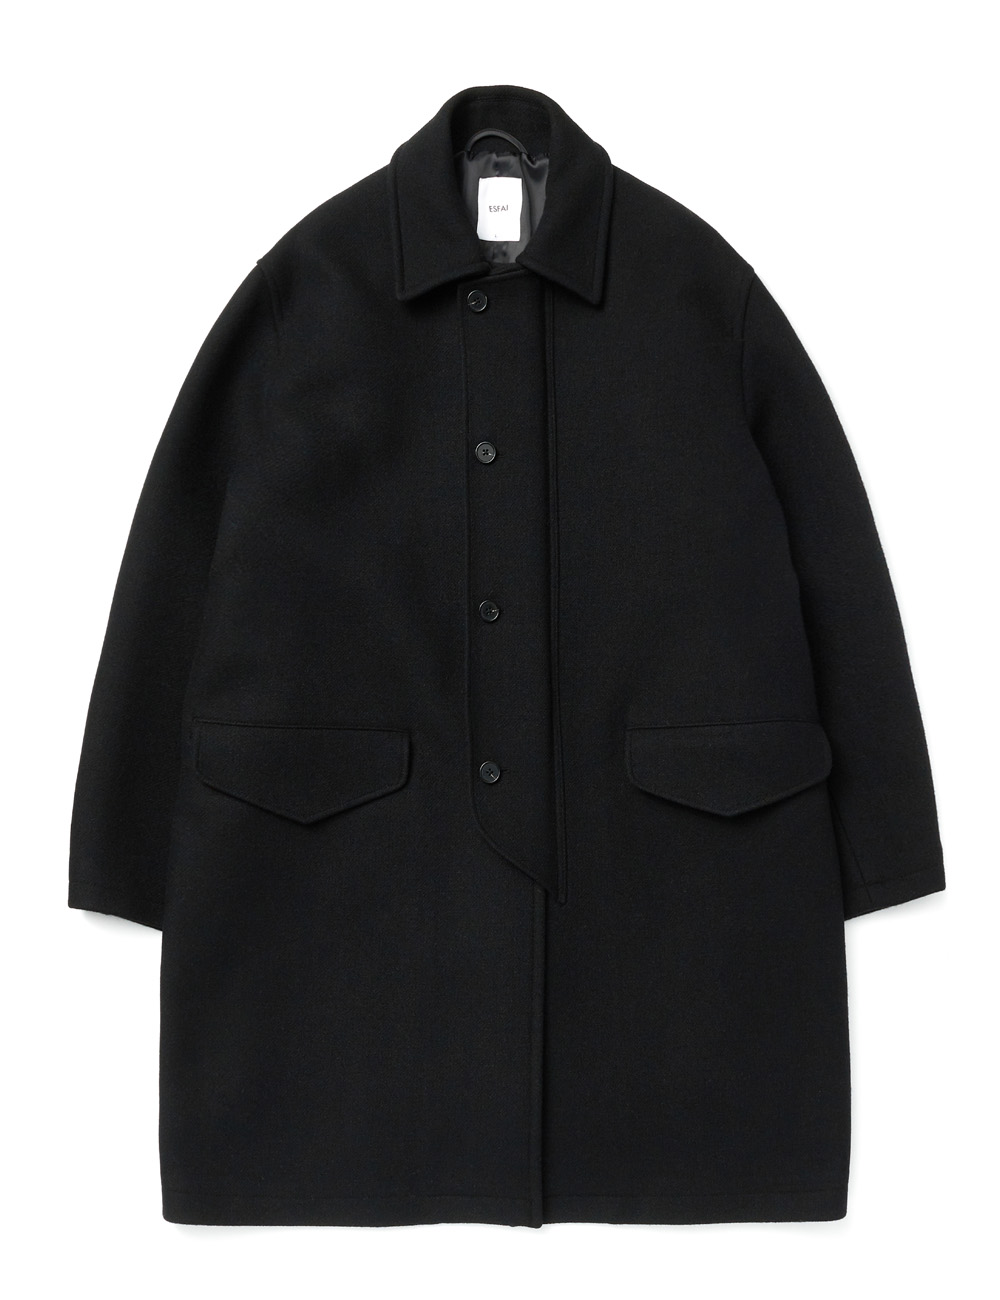 *RESTOCK 12월 14일 예약발송* [ESFAI] SO30 COVER COAT (BLACK)